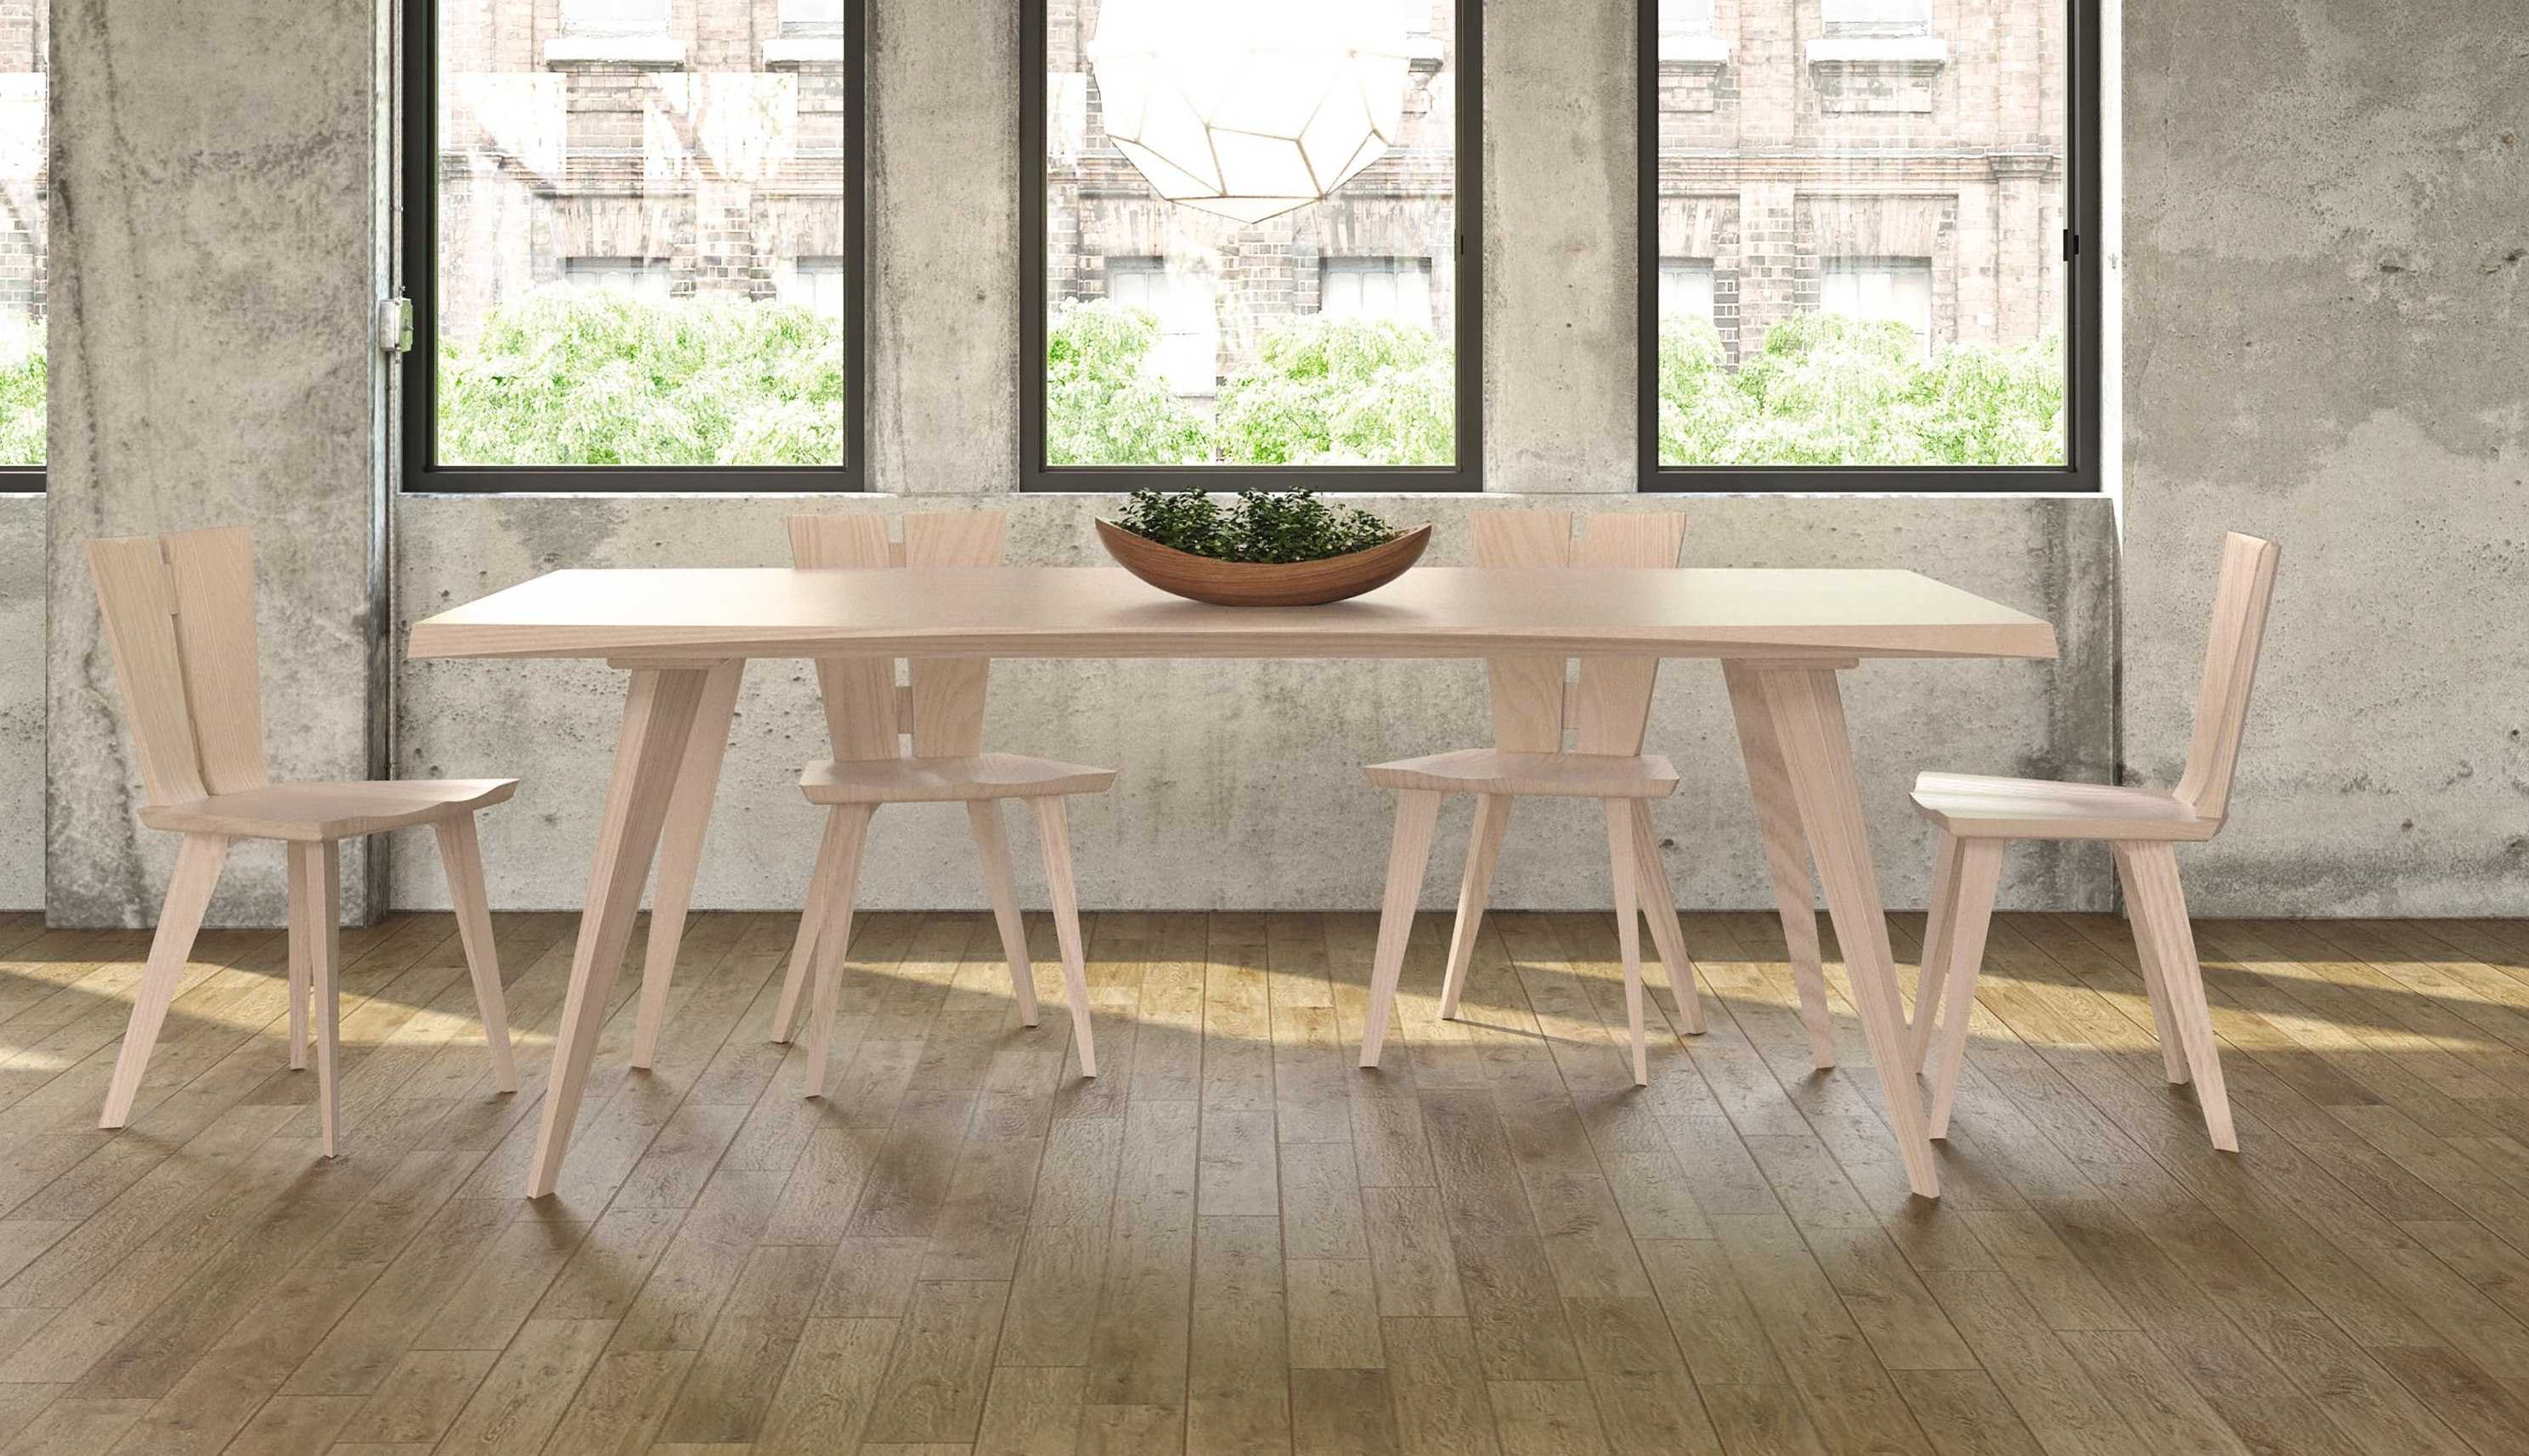 Dining table copeland furniture axis 60l x 42w rectangular